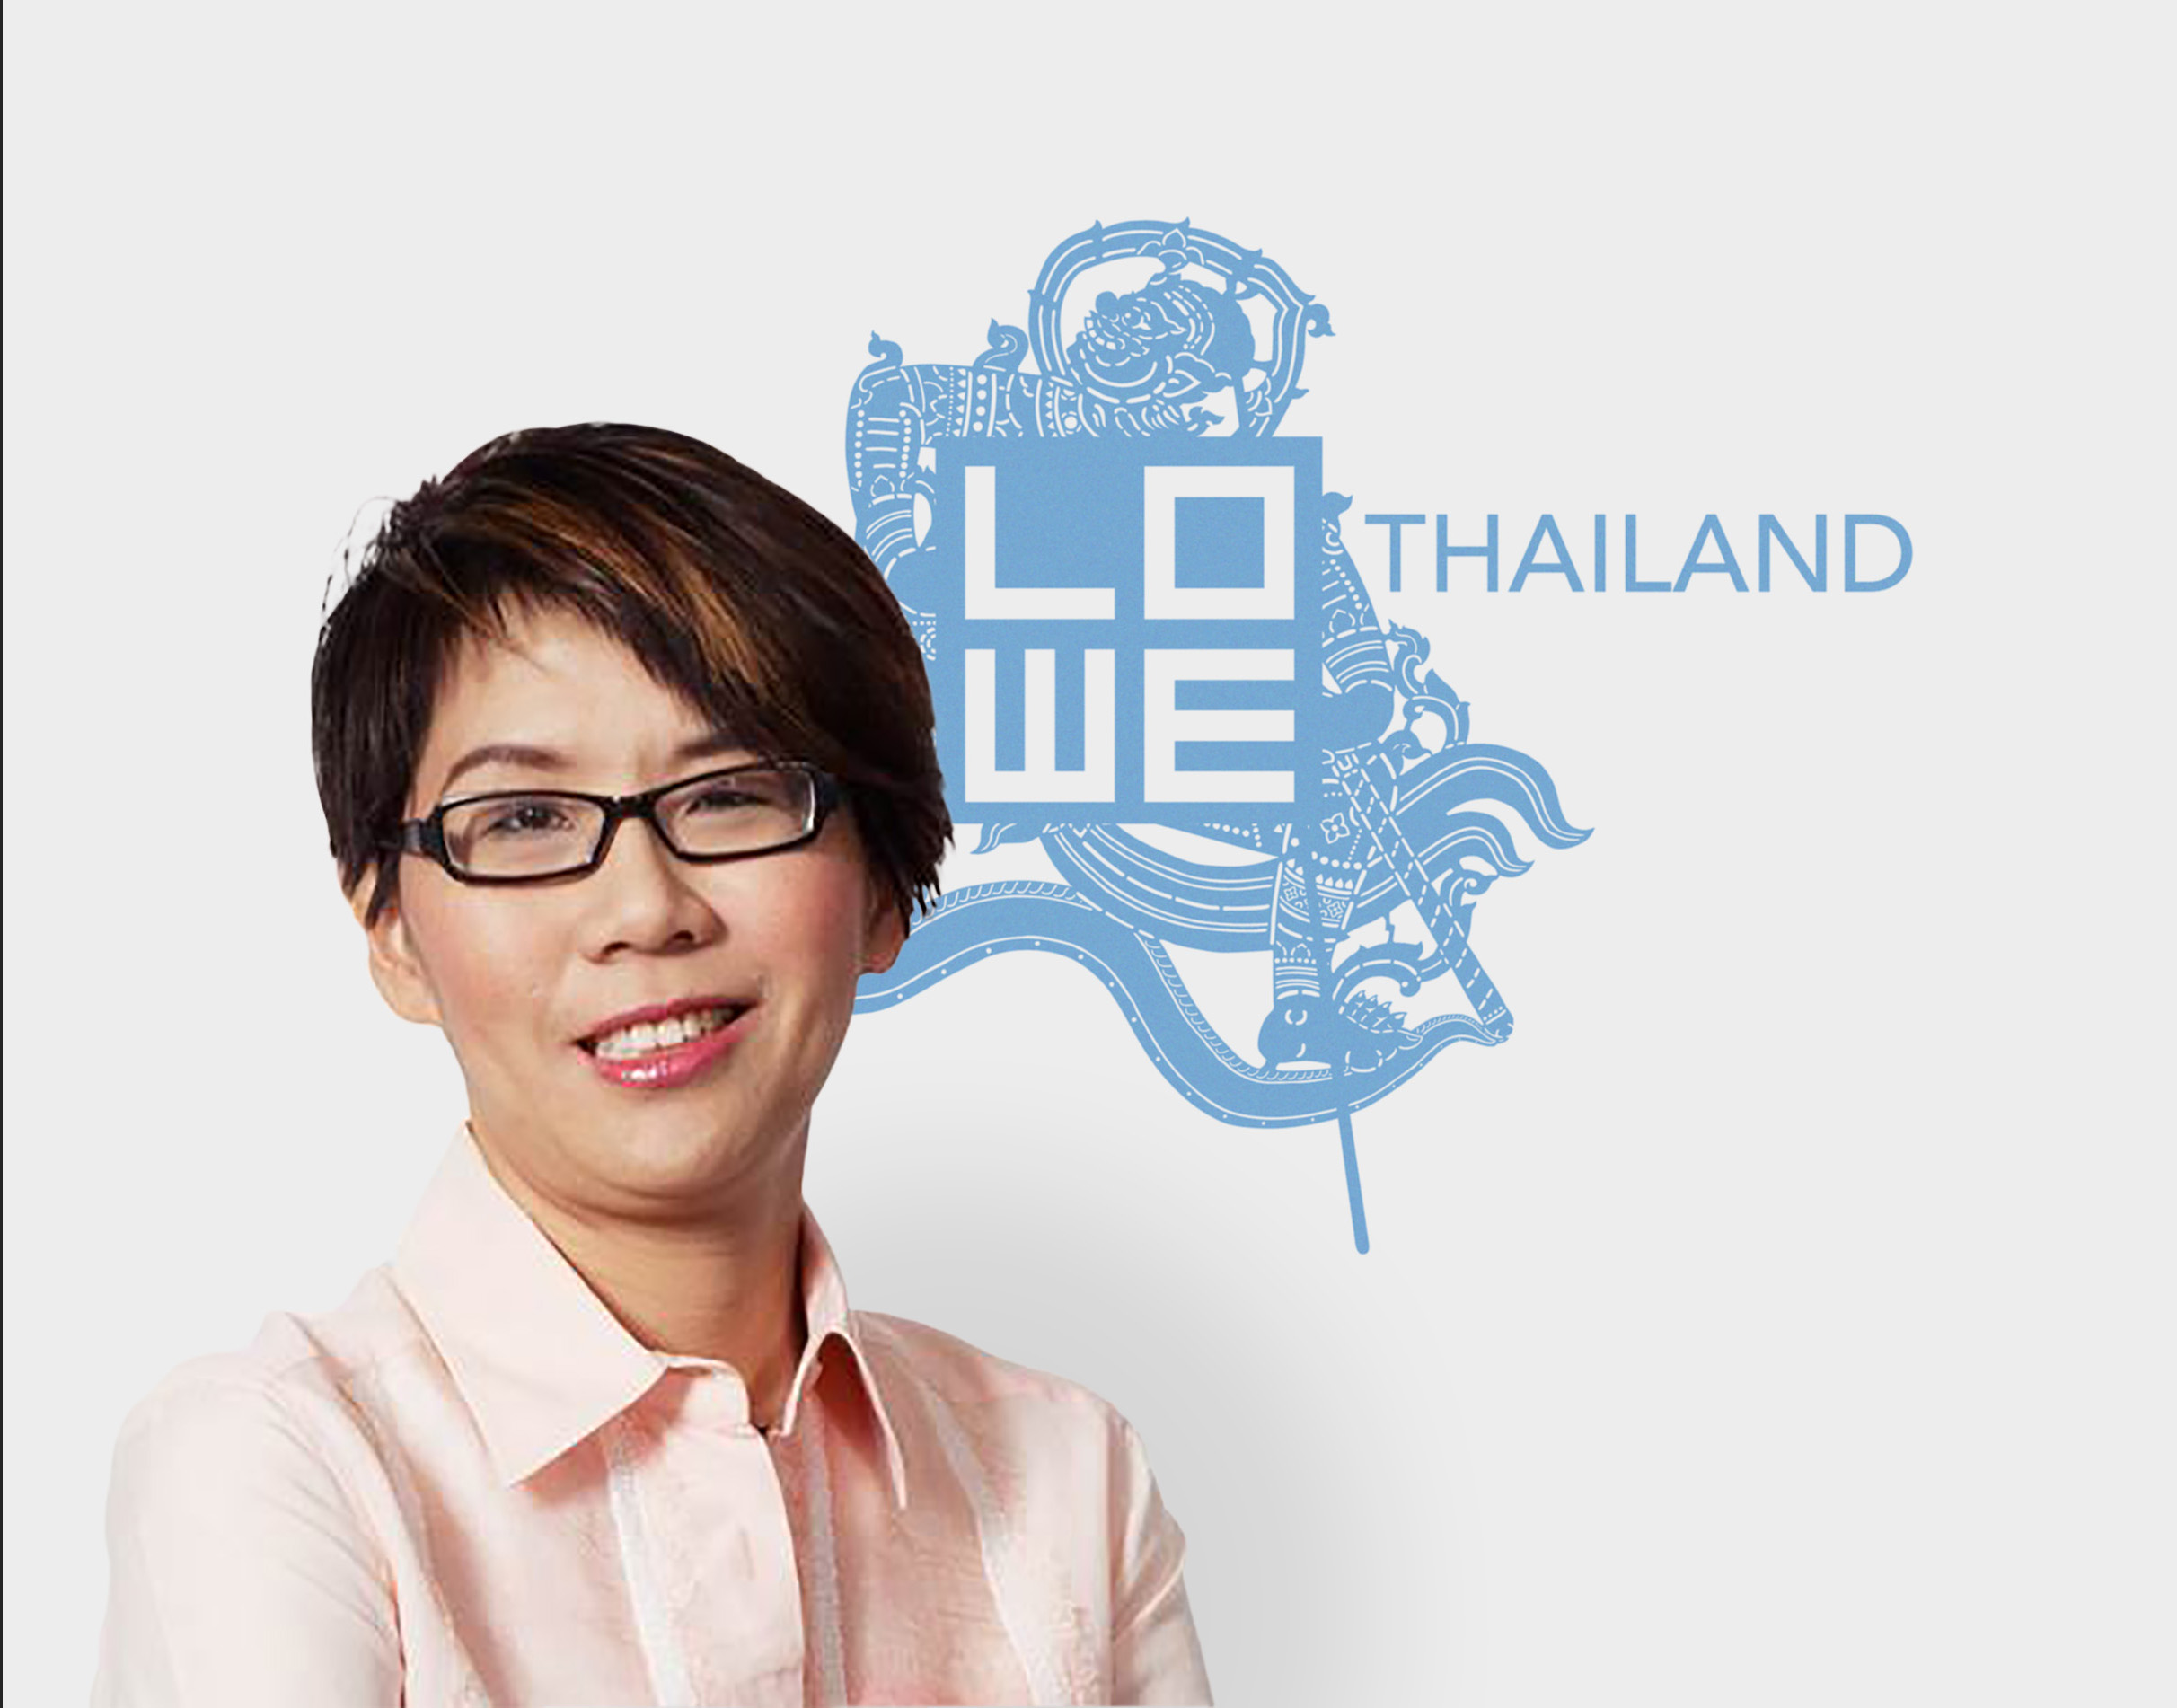 Supavadee Tantiyanon Steps Up As Lowe Thailand's Chief Executive Officer